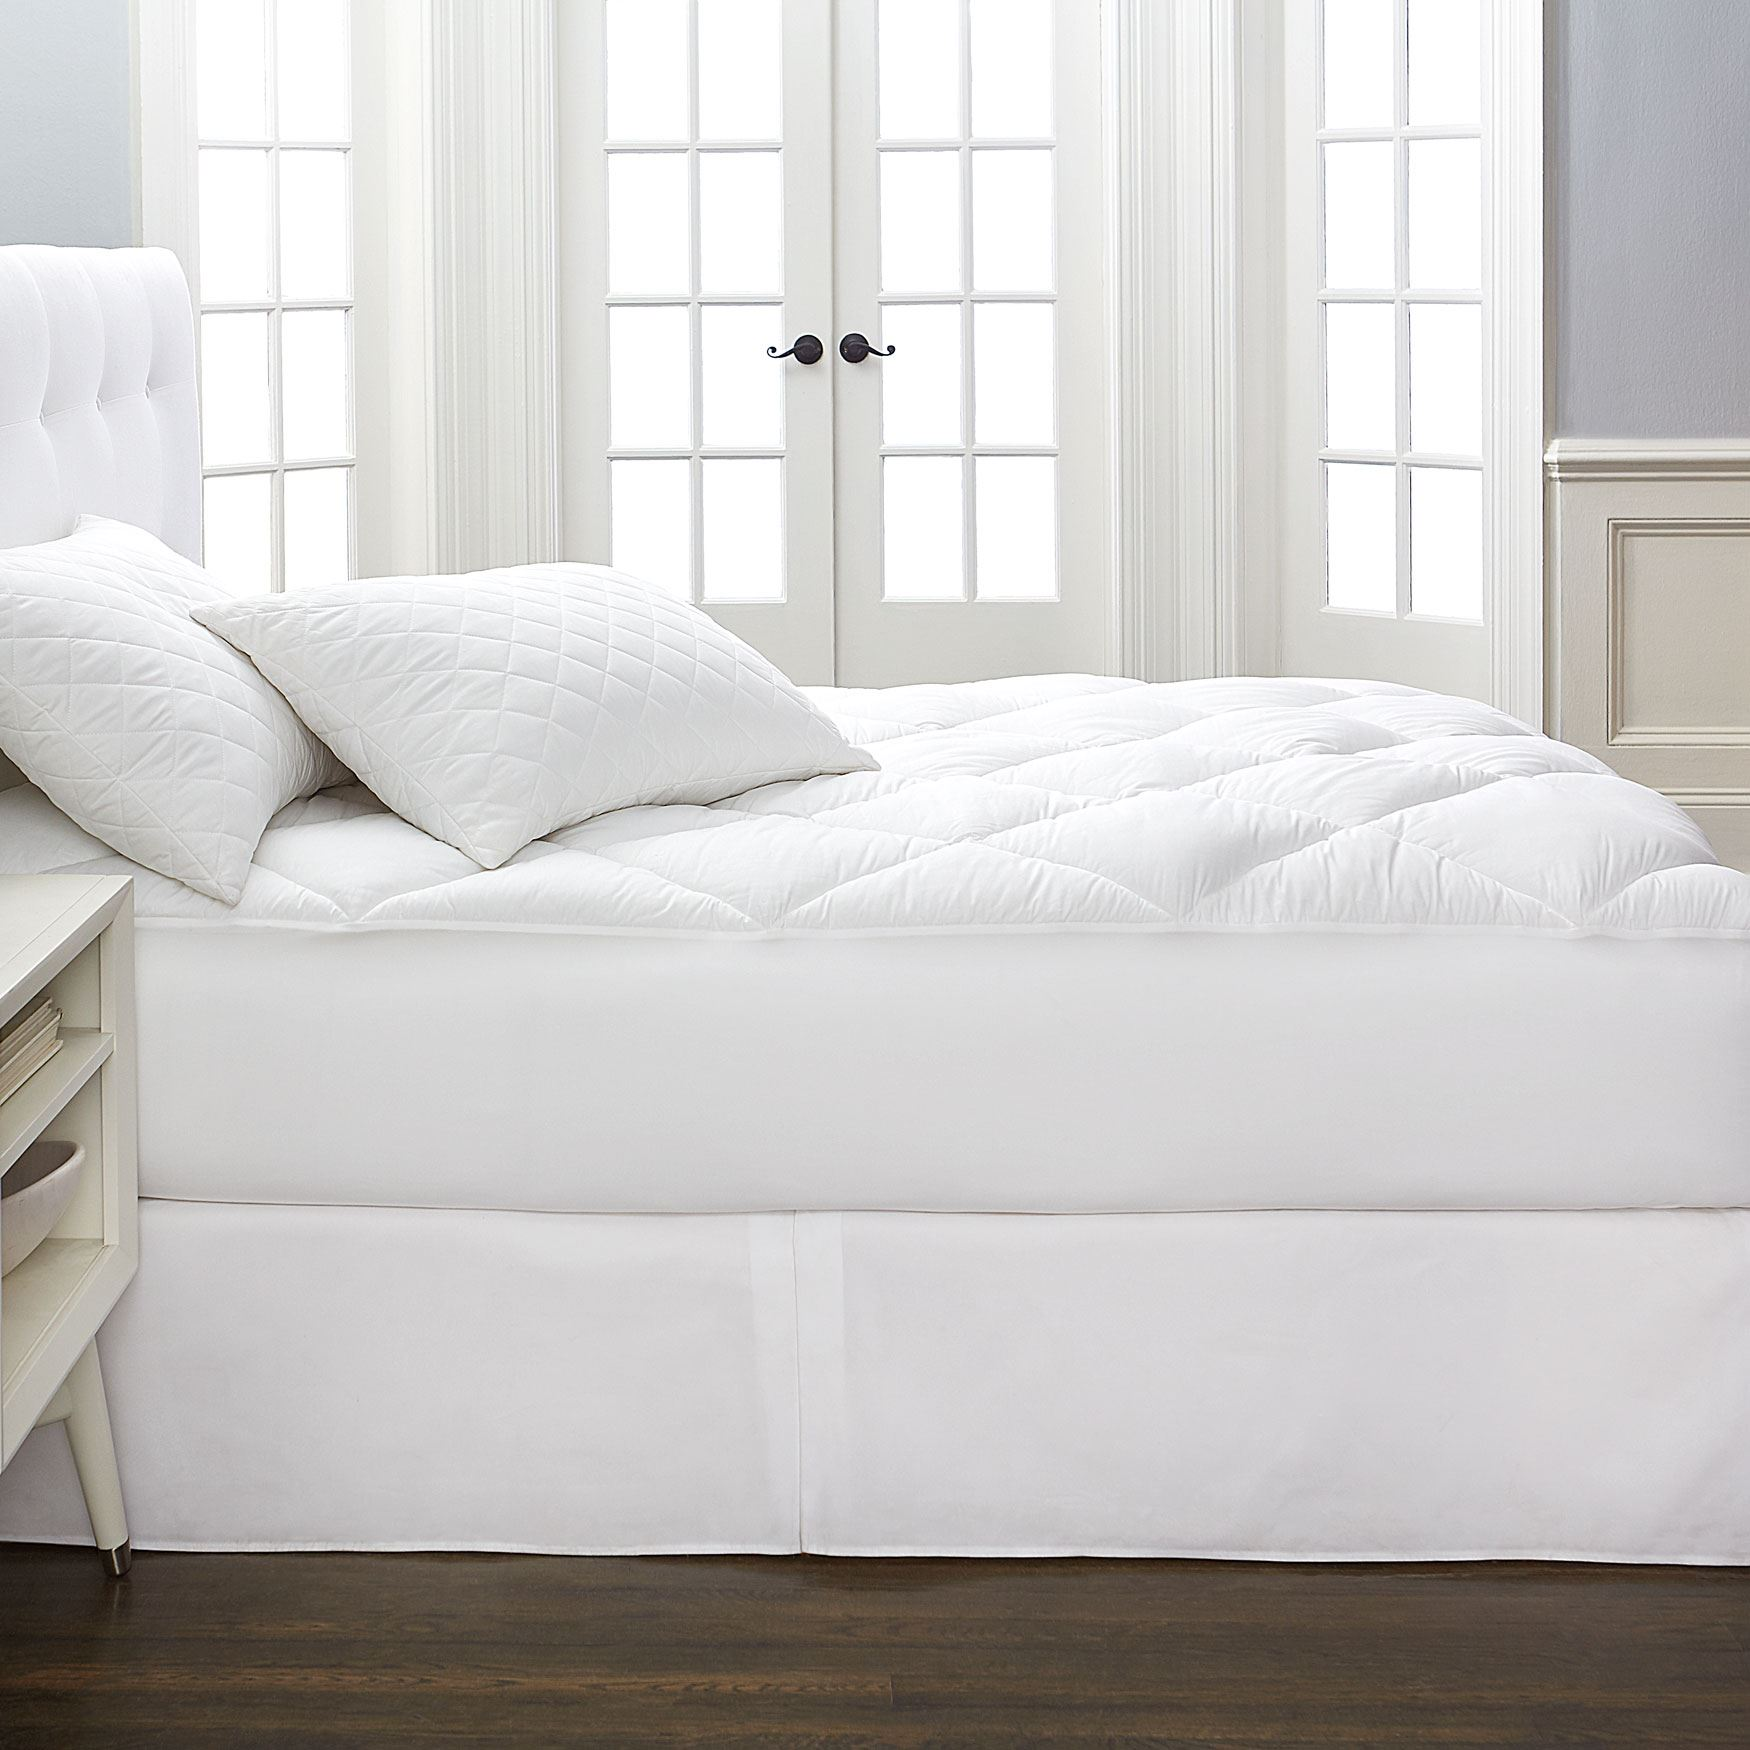 Cotton Collection Reversible Mattress Topper,